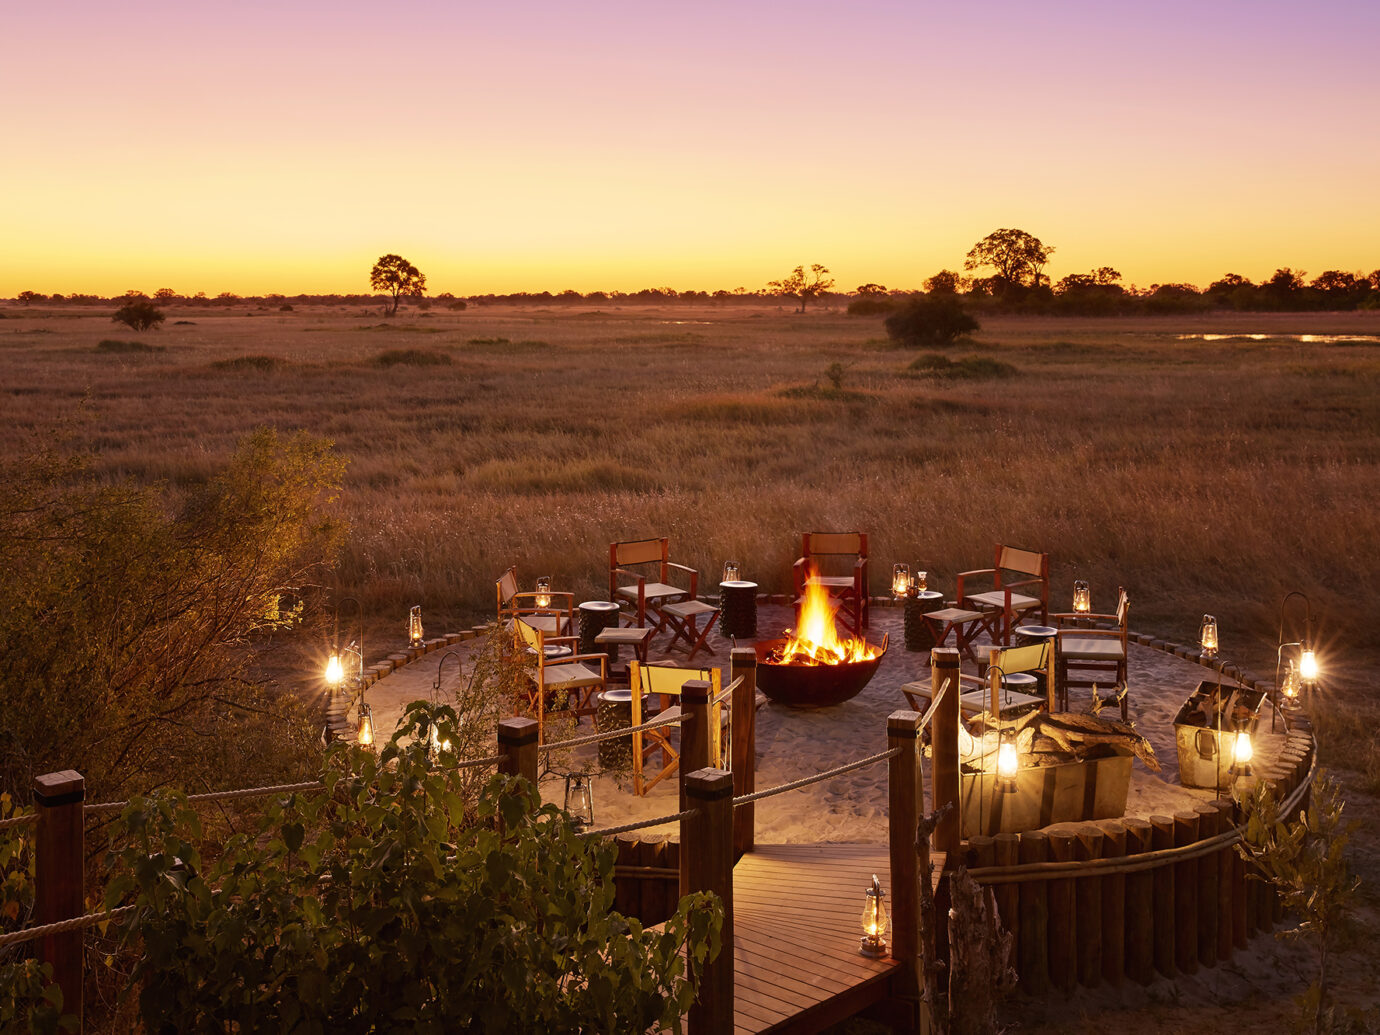 Fire pit at Tuludi Camp, Botswana